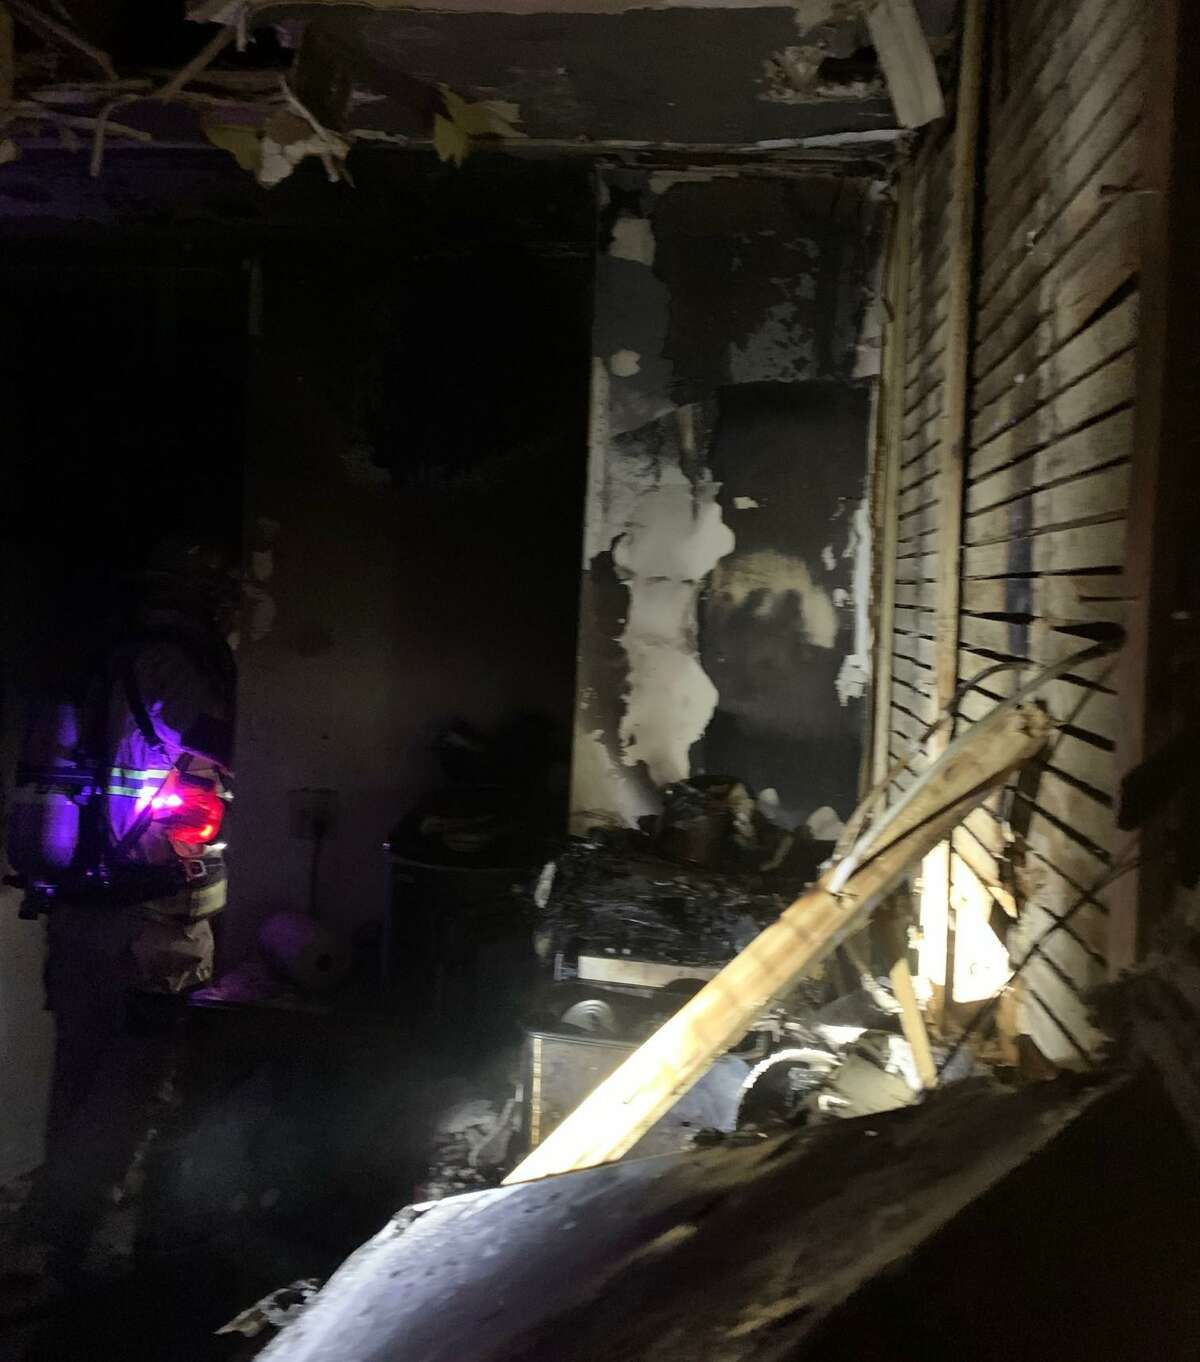 Shelton firefighters battled a fire in a multi-family apartment house on Howe Avenue on Sunday, Jan. 31.